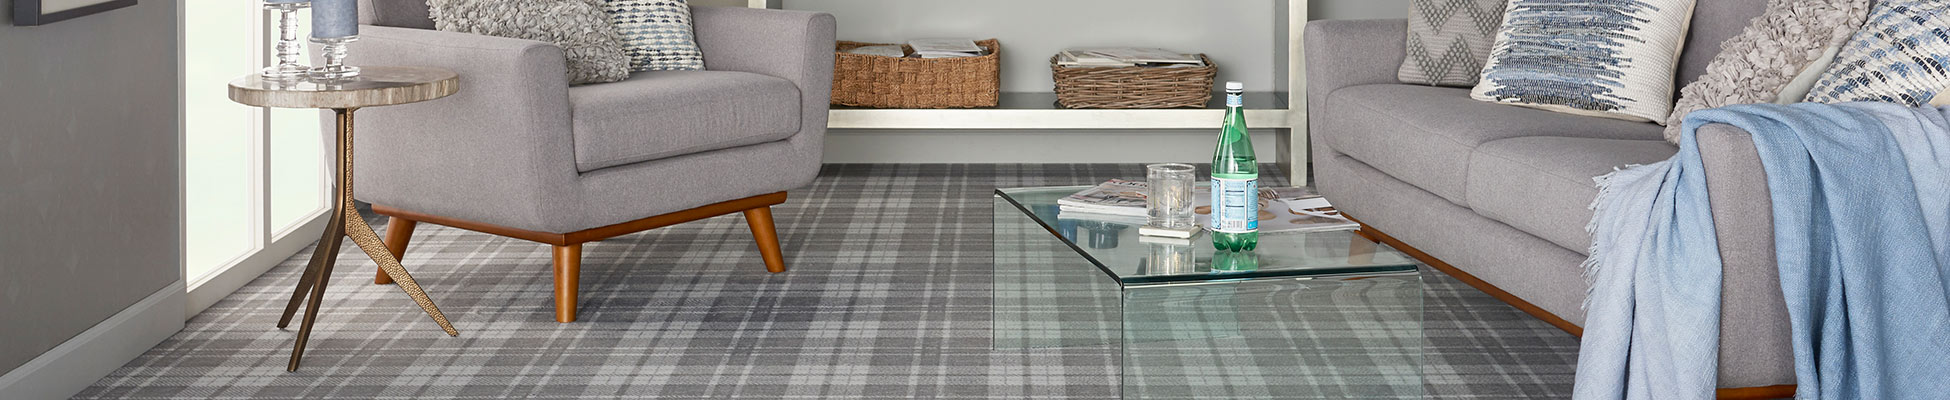 The Rug Gallery Plaid Rugs